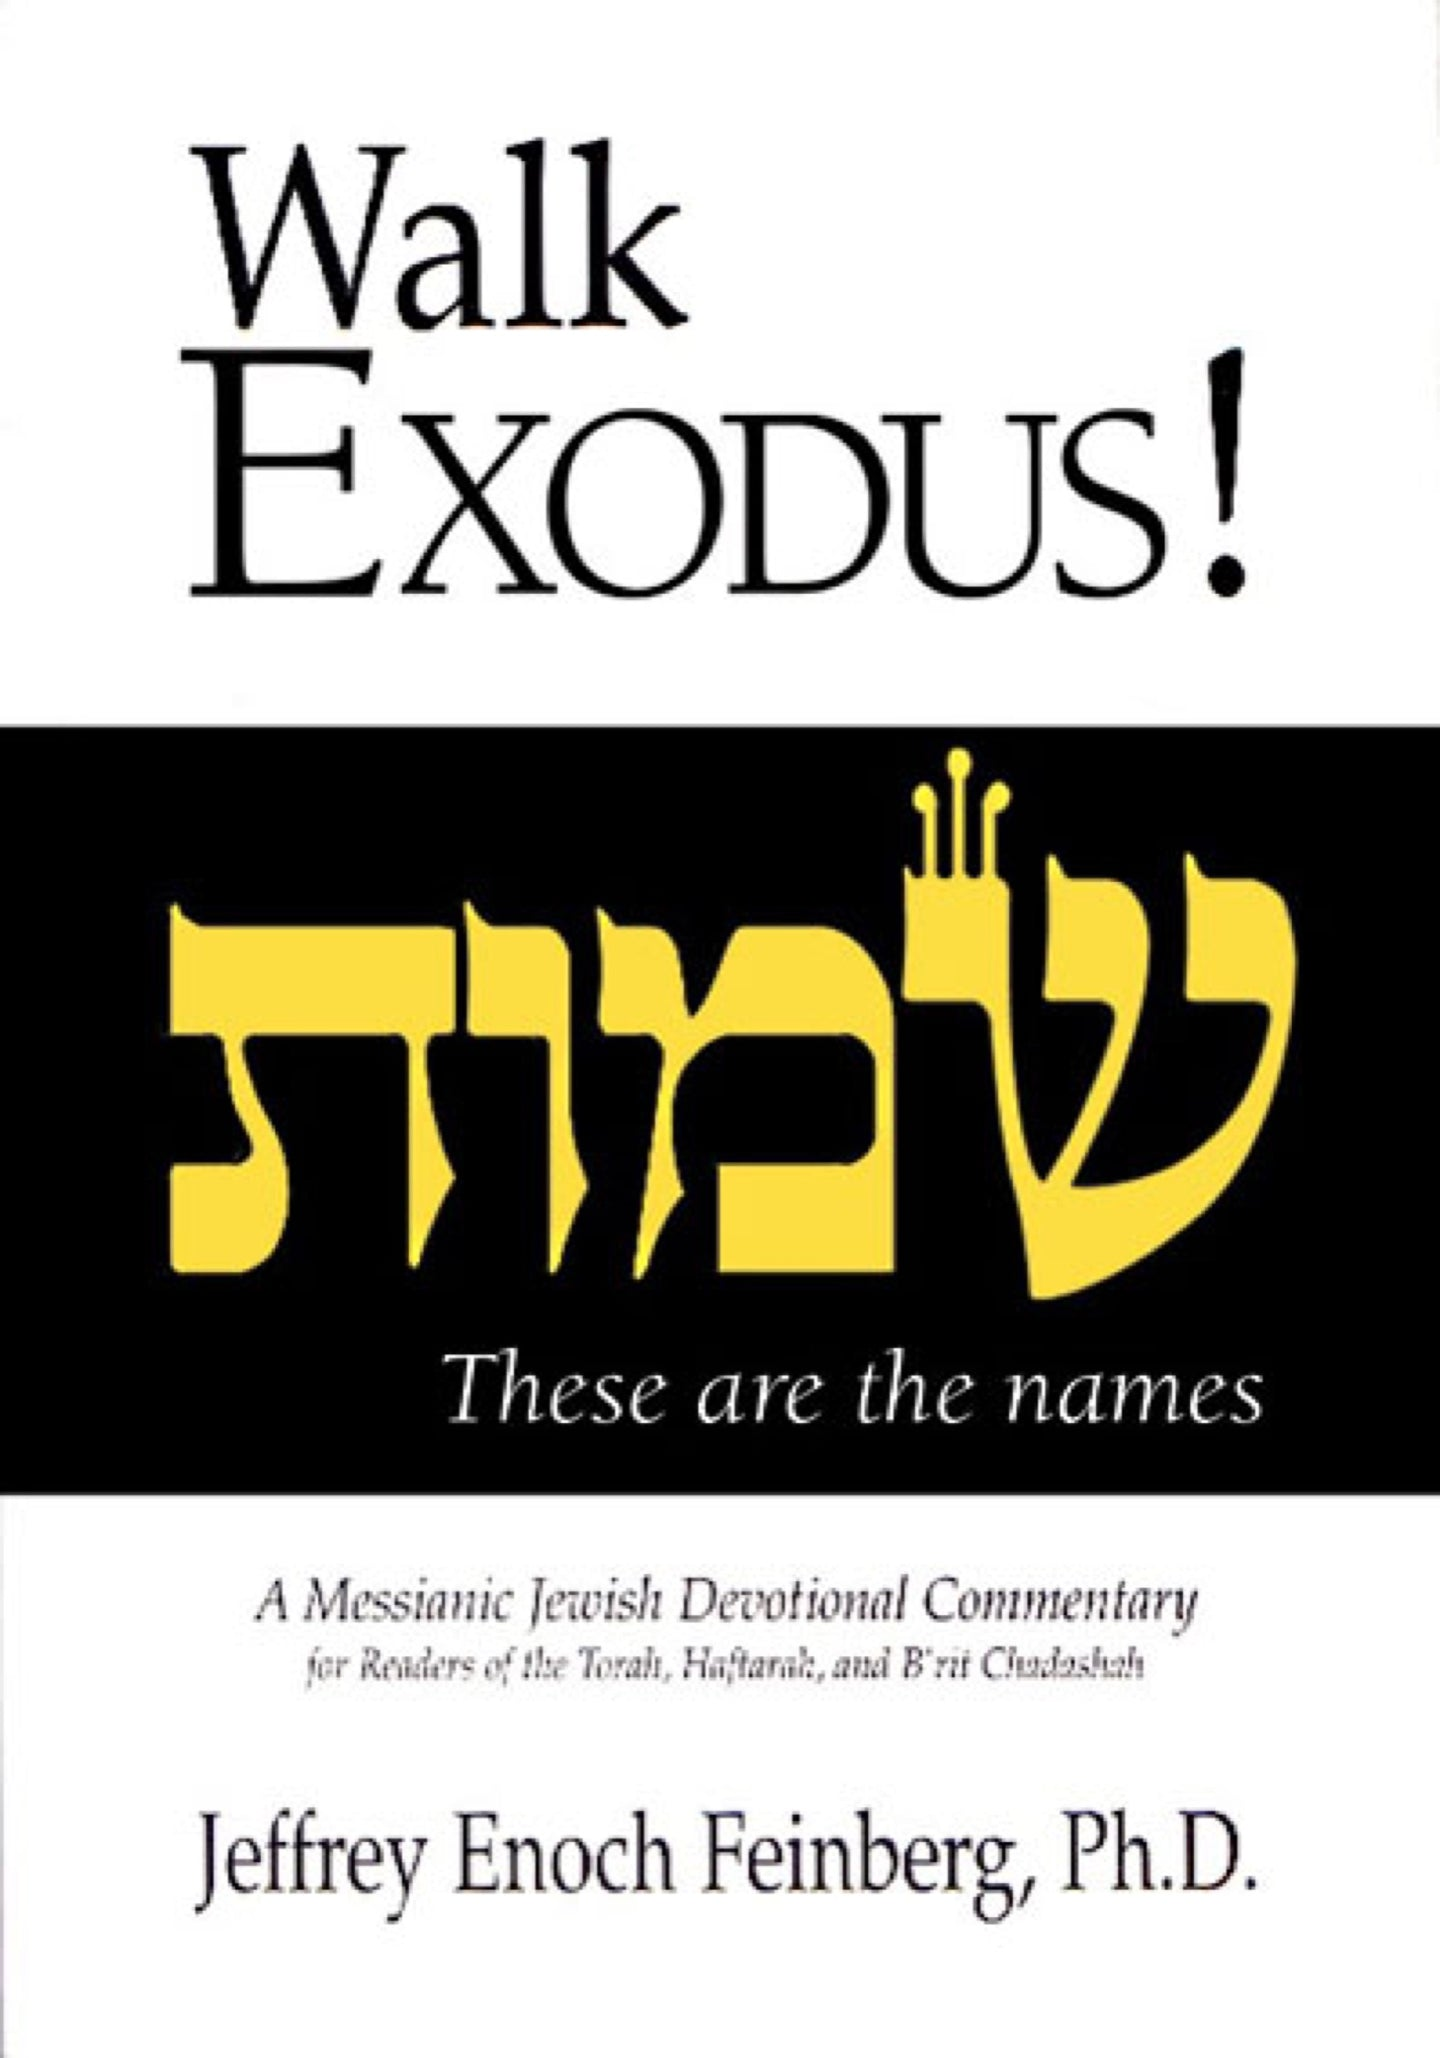 Walk Exodus! A Messianic Jewish Devotional Commentary by Jeffrey Enoch Feinberg, PhD